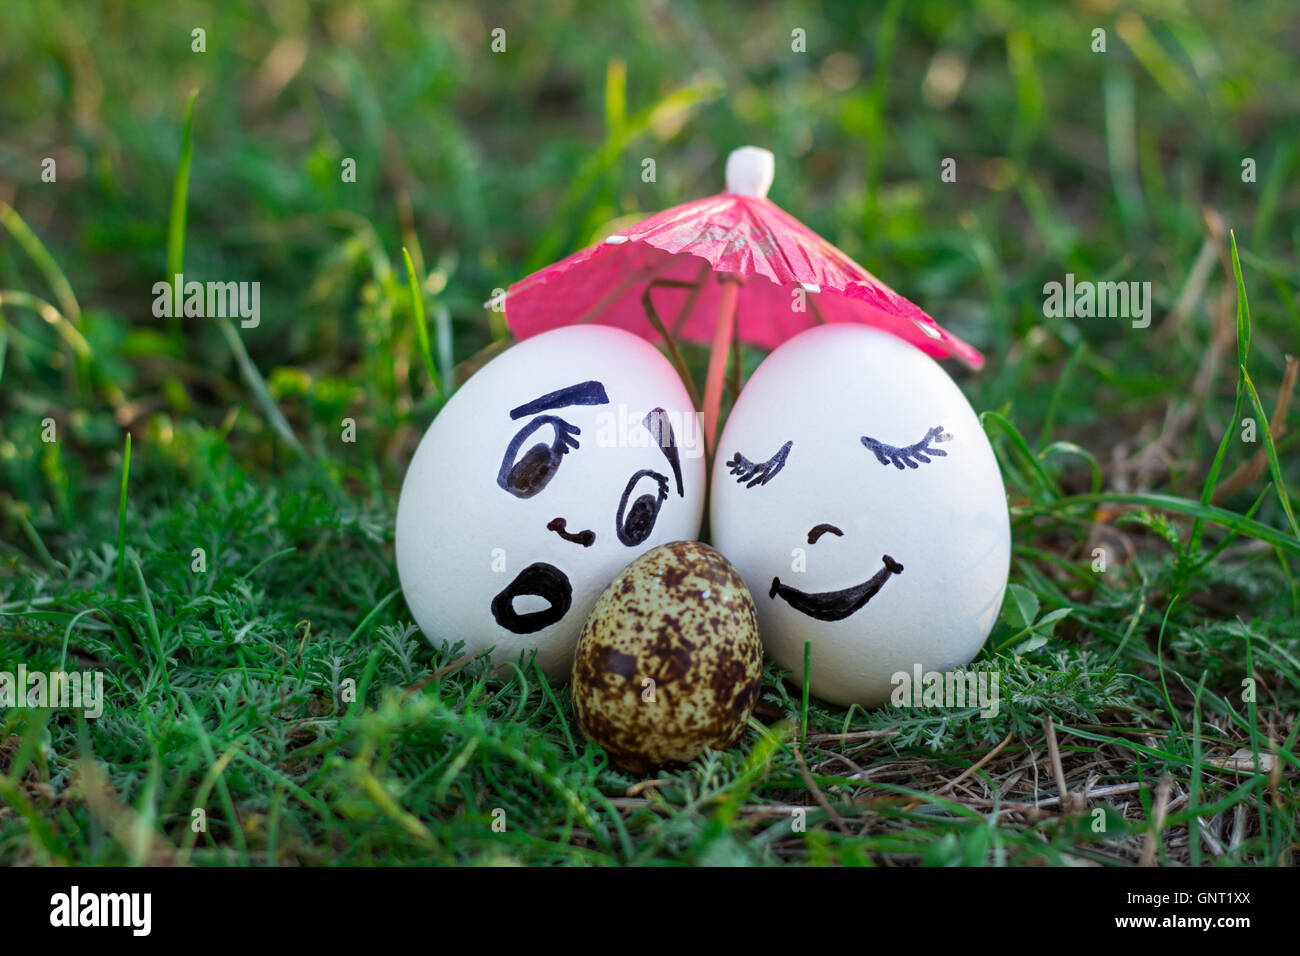 Funny eggs imitating couple of white parents with versicolored baby - Stock Image